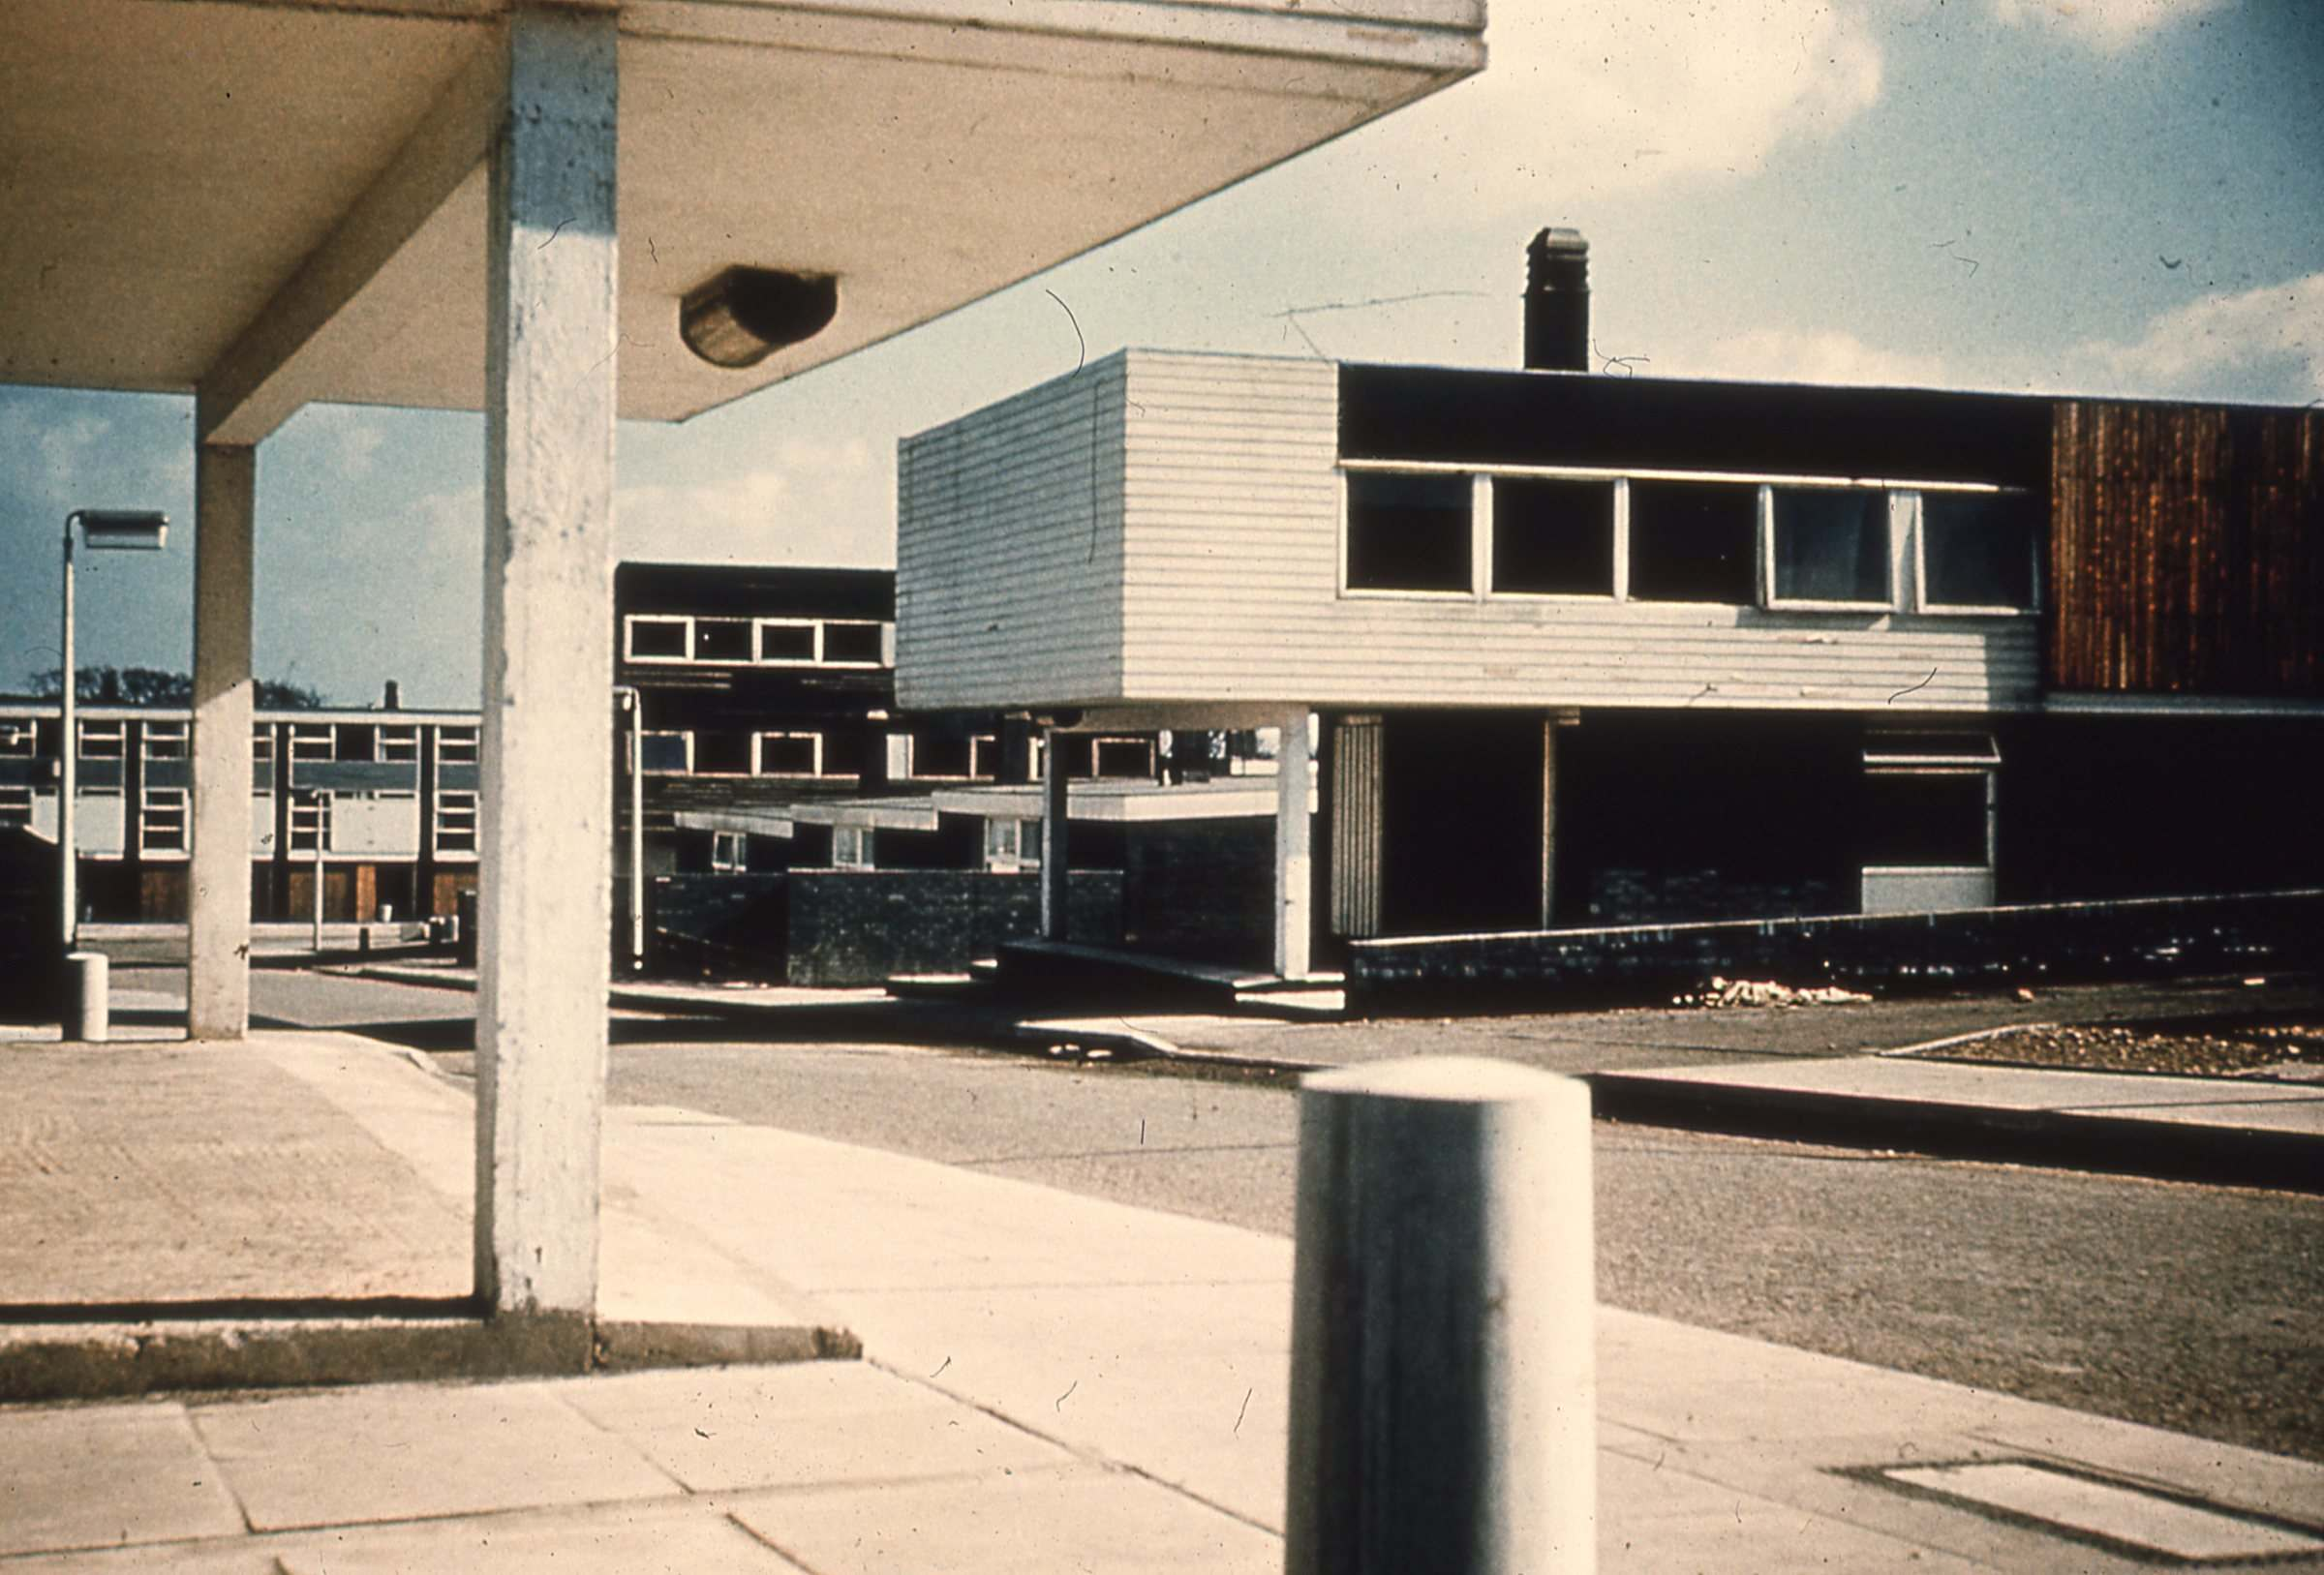 Housing designed by architect Victor Pasmore around 1970 in Peterlee by J.R. James